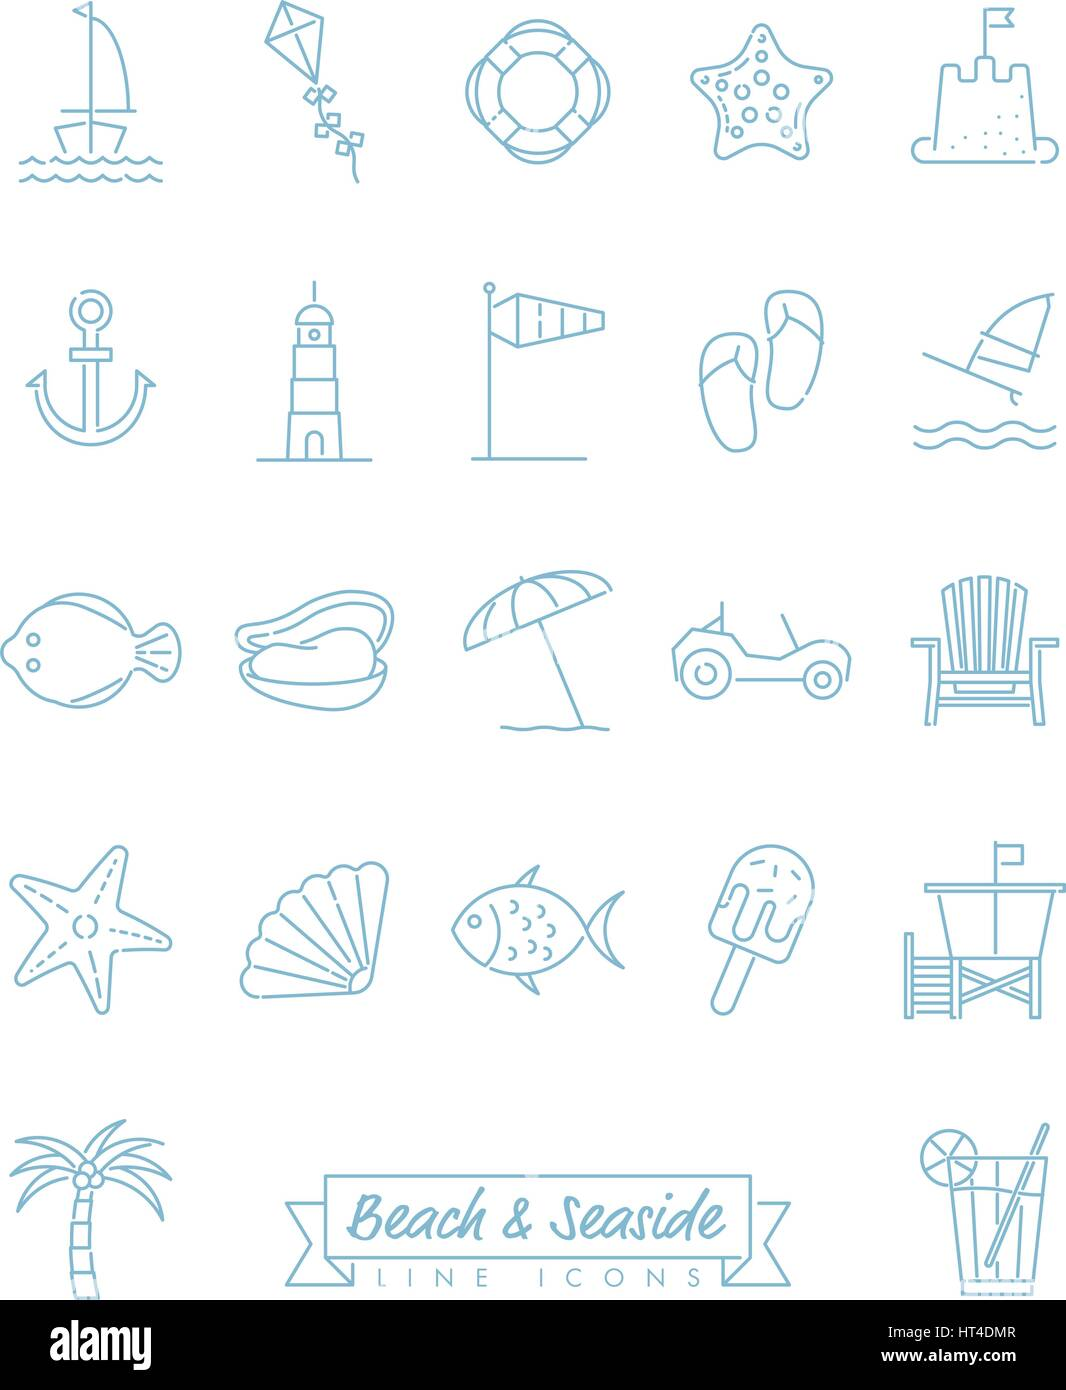 Collection of 22 light blue beach and seaside related symbols - Stock Vector